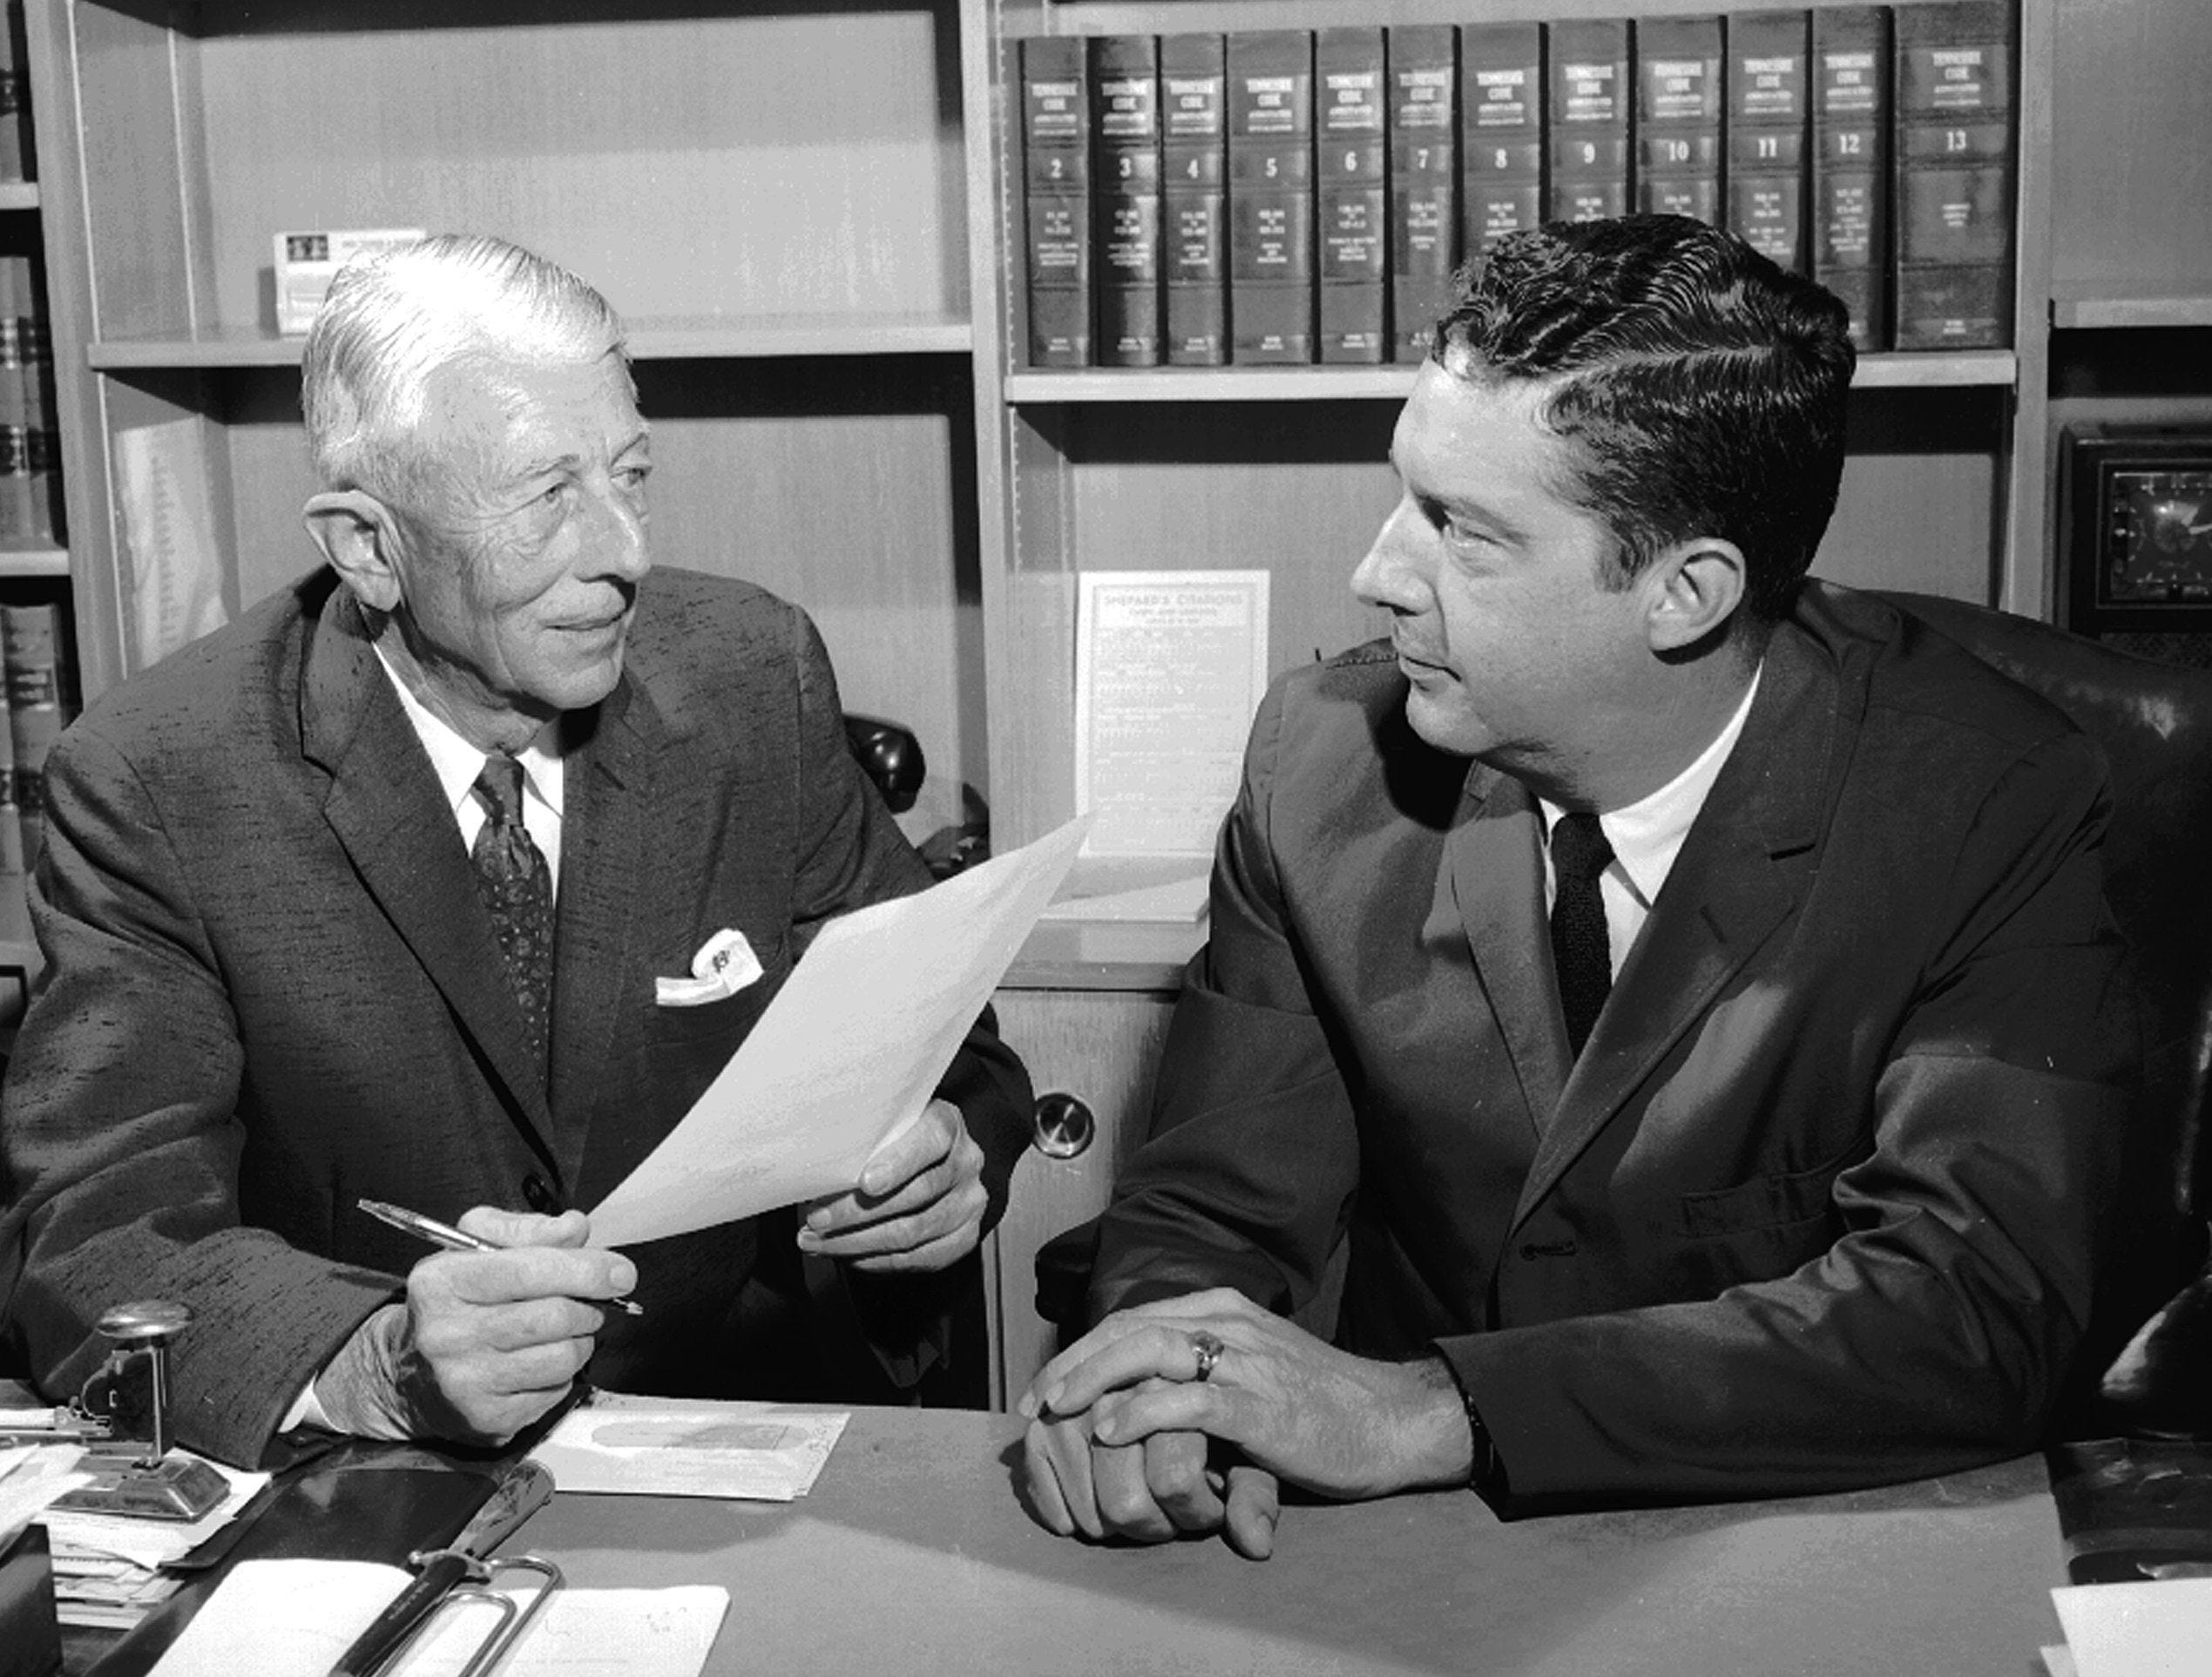 The subject was the grand jury when jury foreman William F. Bowld (left) and Attorney General Phil Canale met on June 26, 1962.